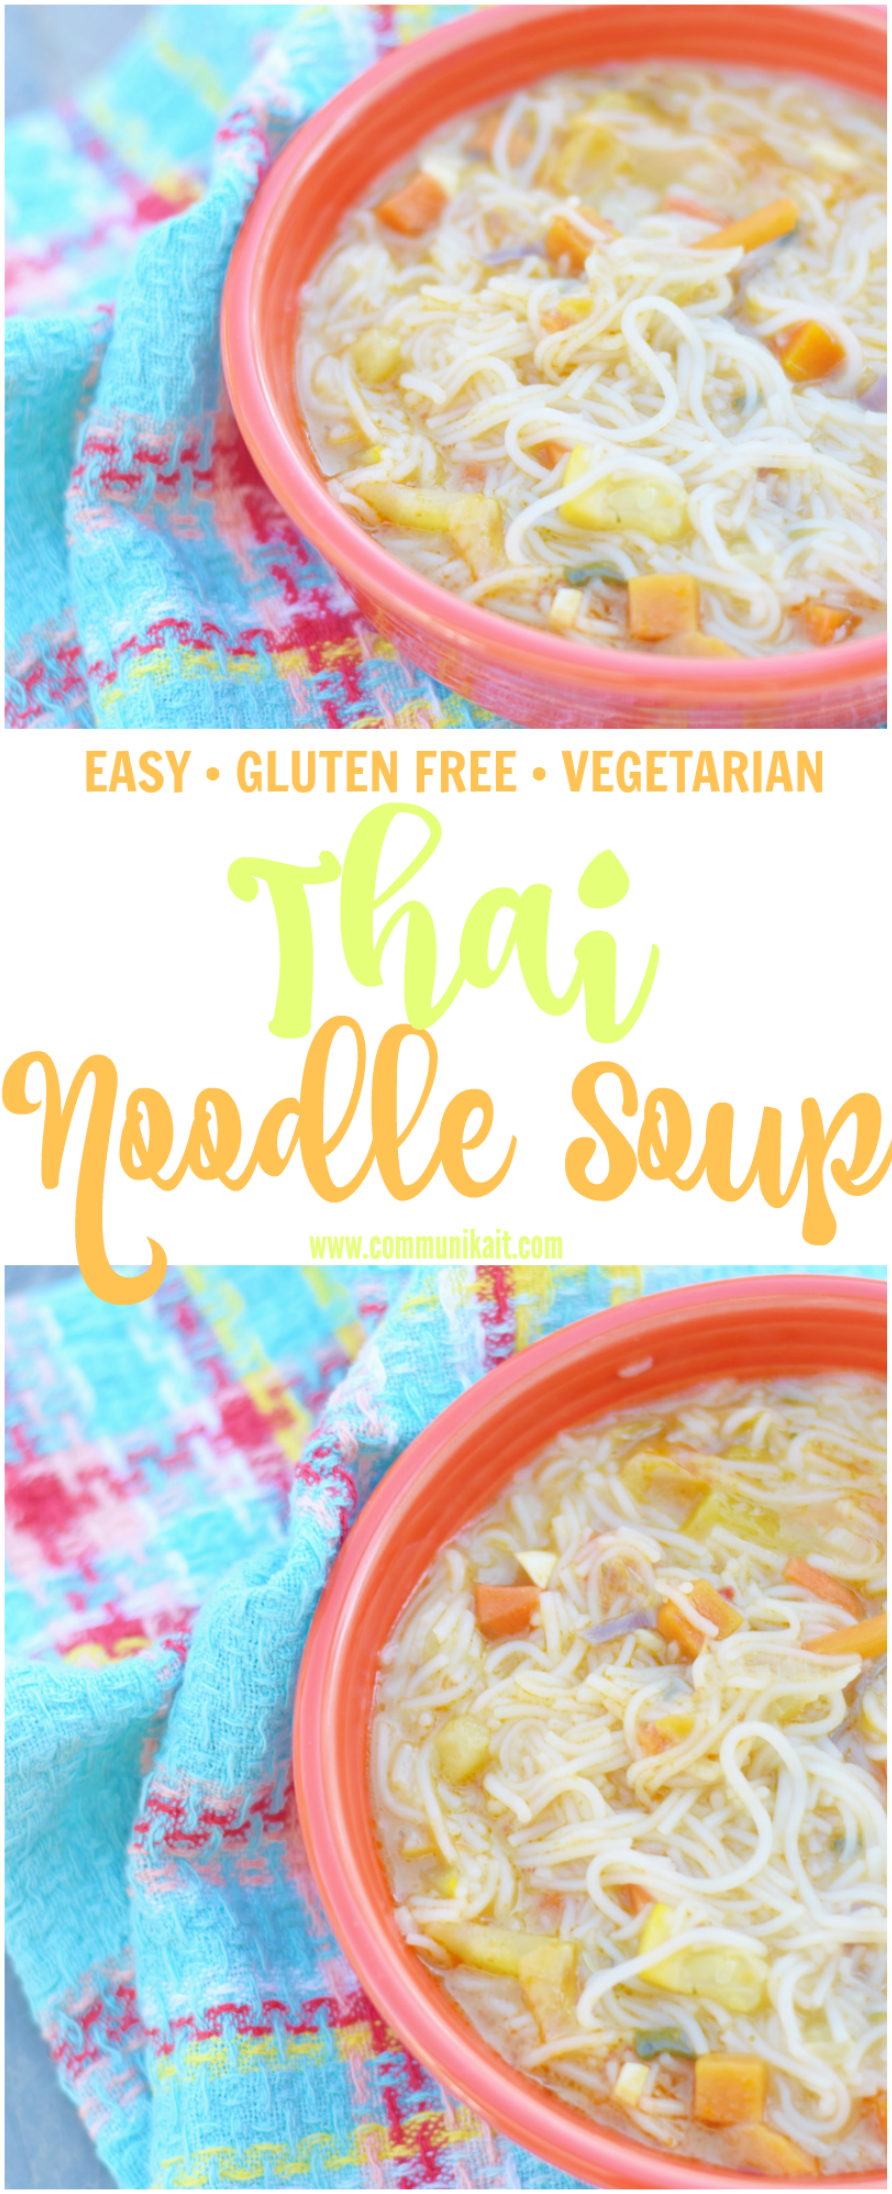 Thai Noodle Soup - Thai Noodle Soup is the perfect recipe for kicking a sickness, warming up on a cold day or just to enjoy a soup with a ton of flavor! | Thai Noodle Soup Recipe - Easy Thai Noodle Soup - Thai Noodle Soup Ingredients - Thai Curry Noodle Soup